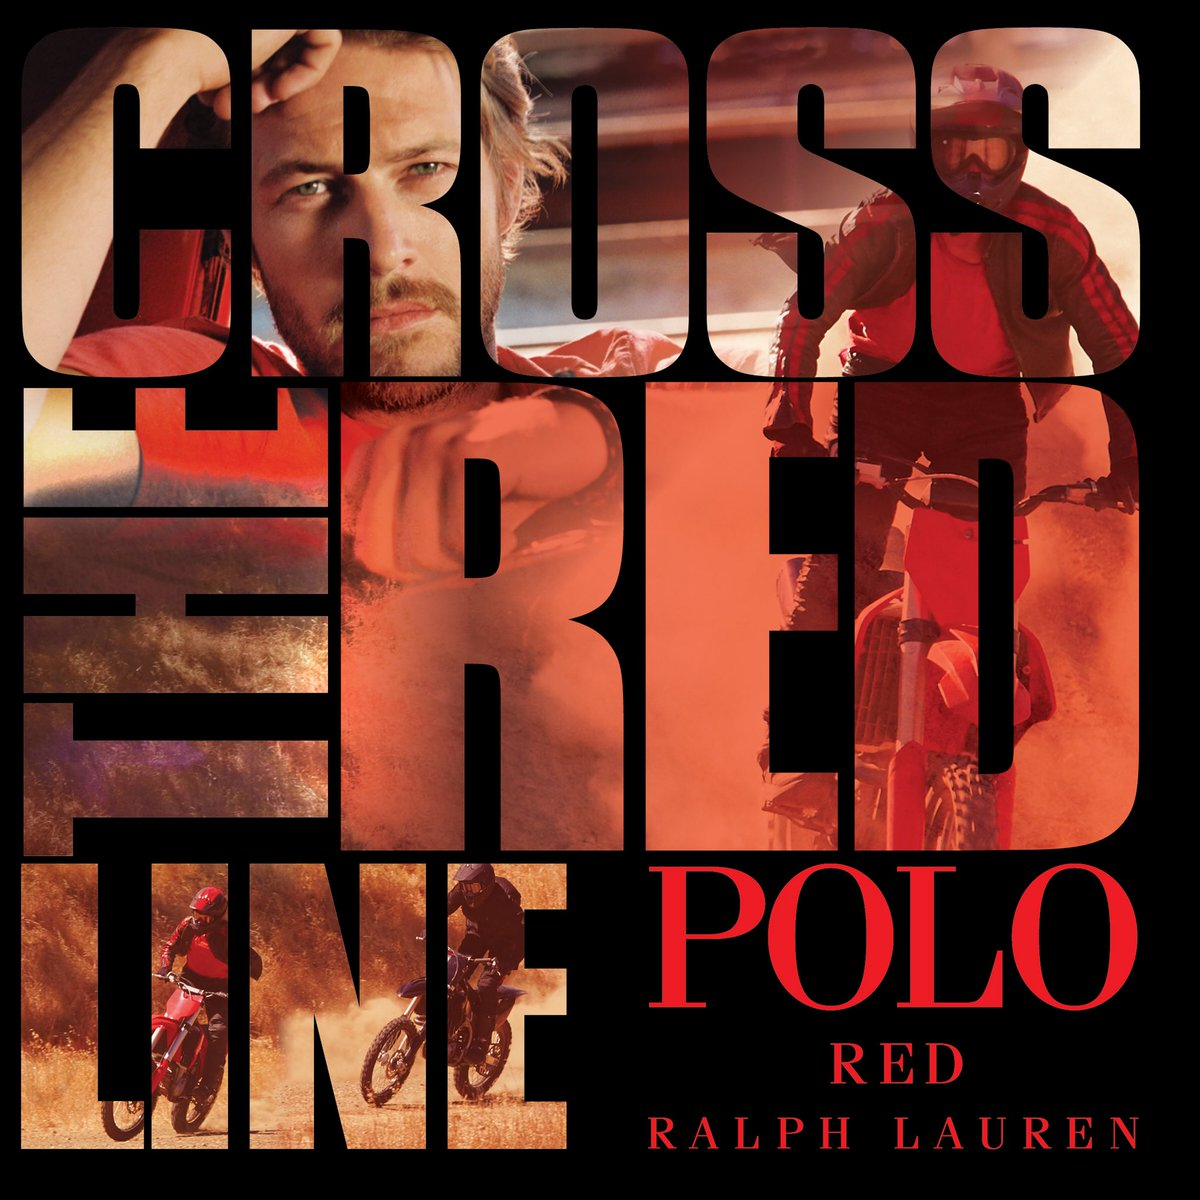 Cross the red line with the new #PoloRed by @RalphLauren Fragrances #ad